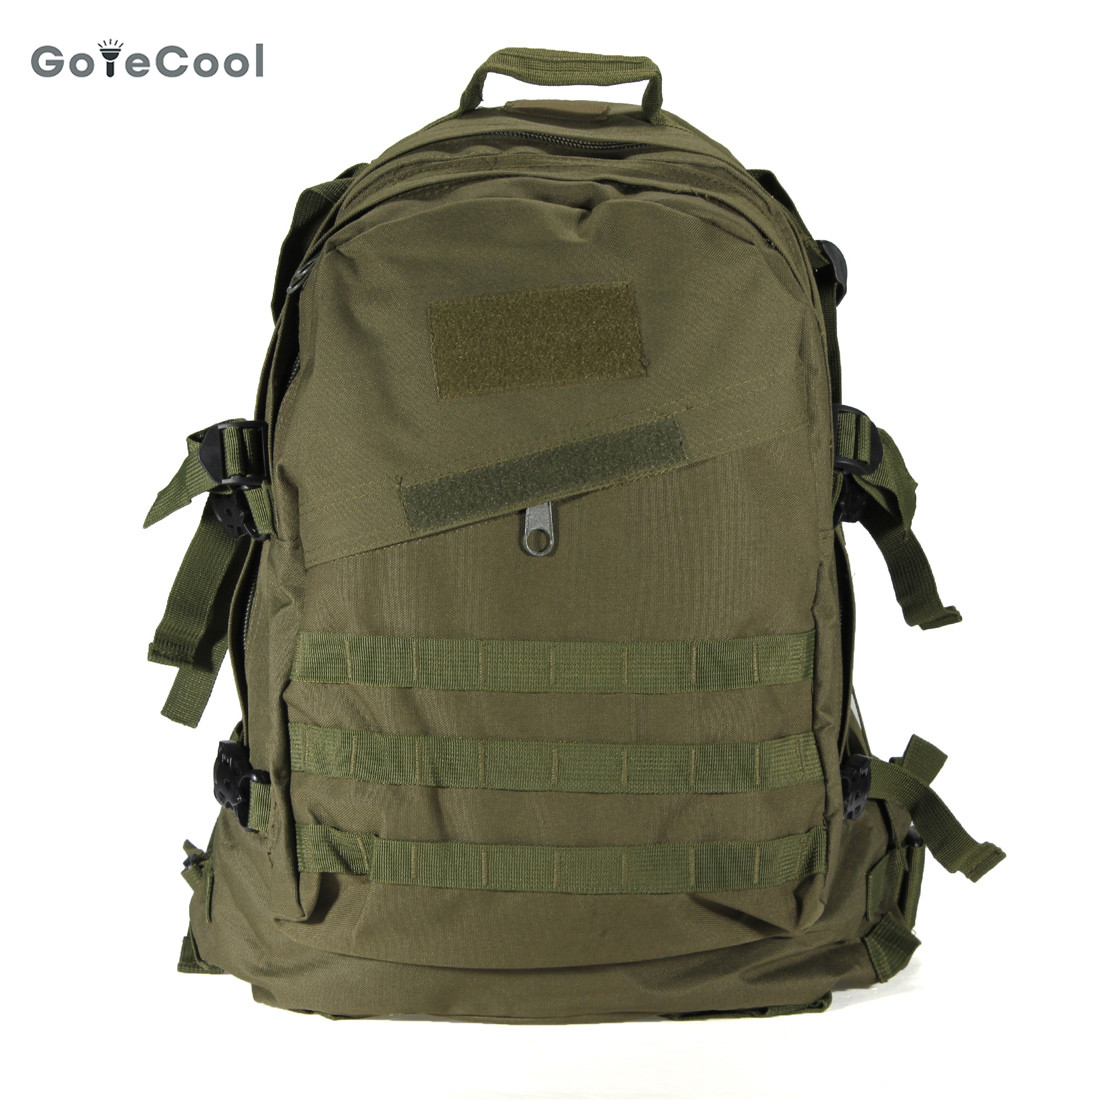 40L 3D Outdoor Sport nylon Military Tactical Backpack Rucksack travel Bag Camping Hiking climbing bag 40l outdoor hiking backpack 2l personal waist bag for travel climbing camping